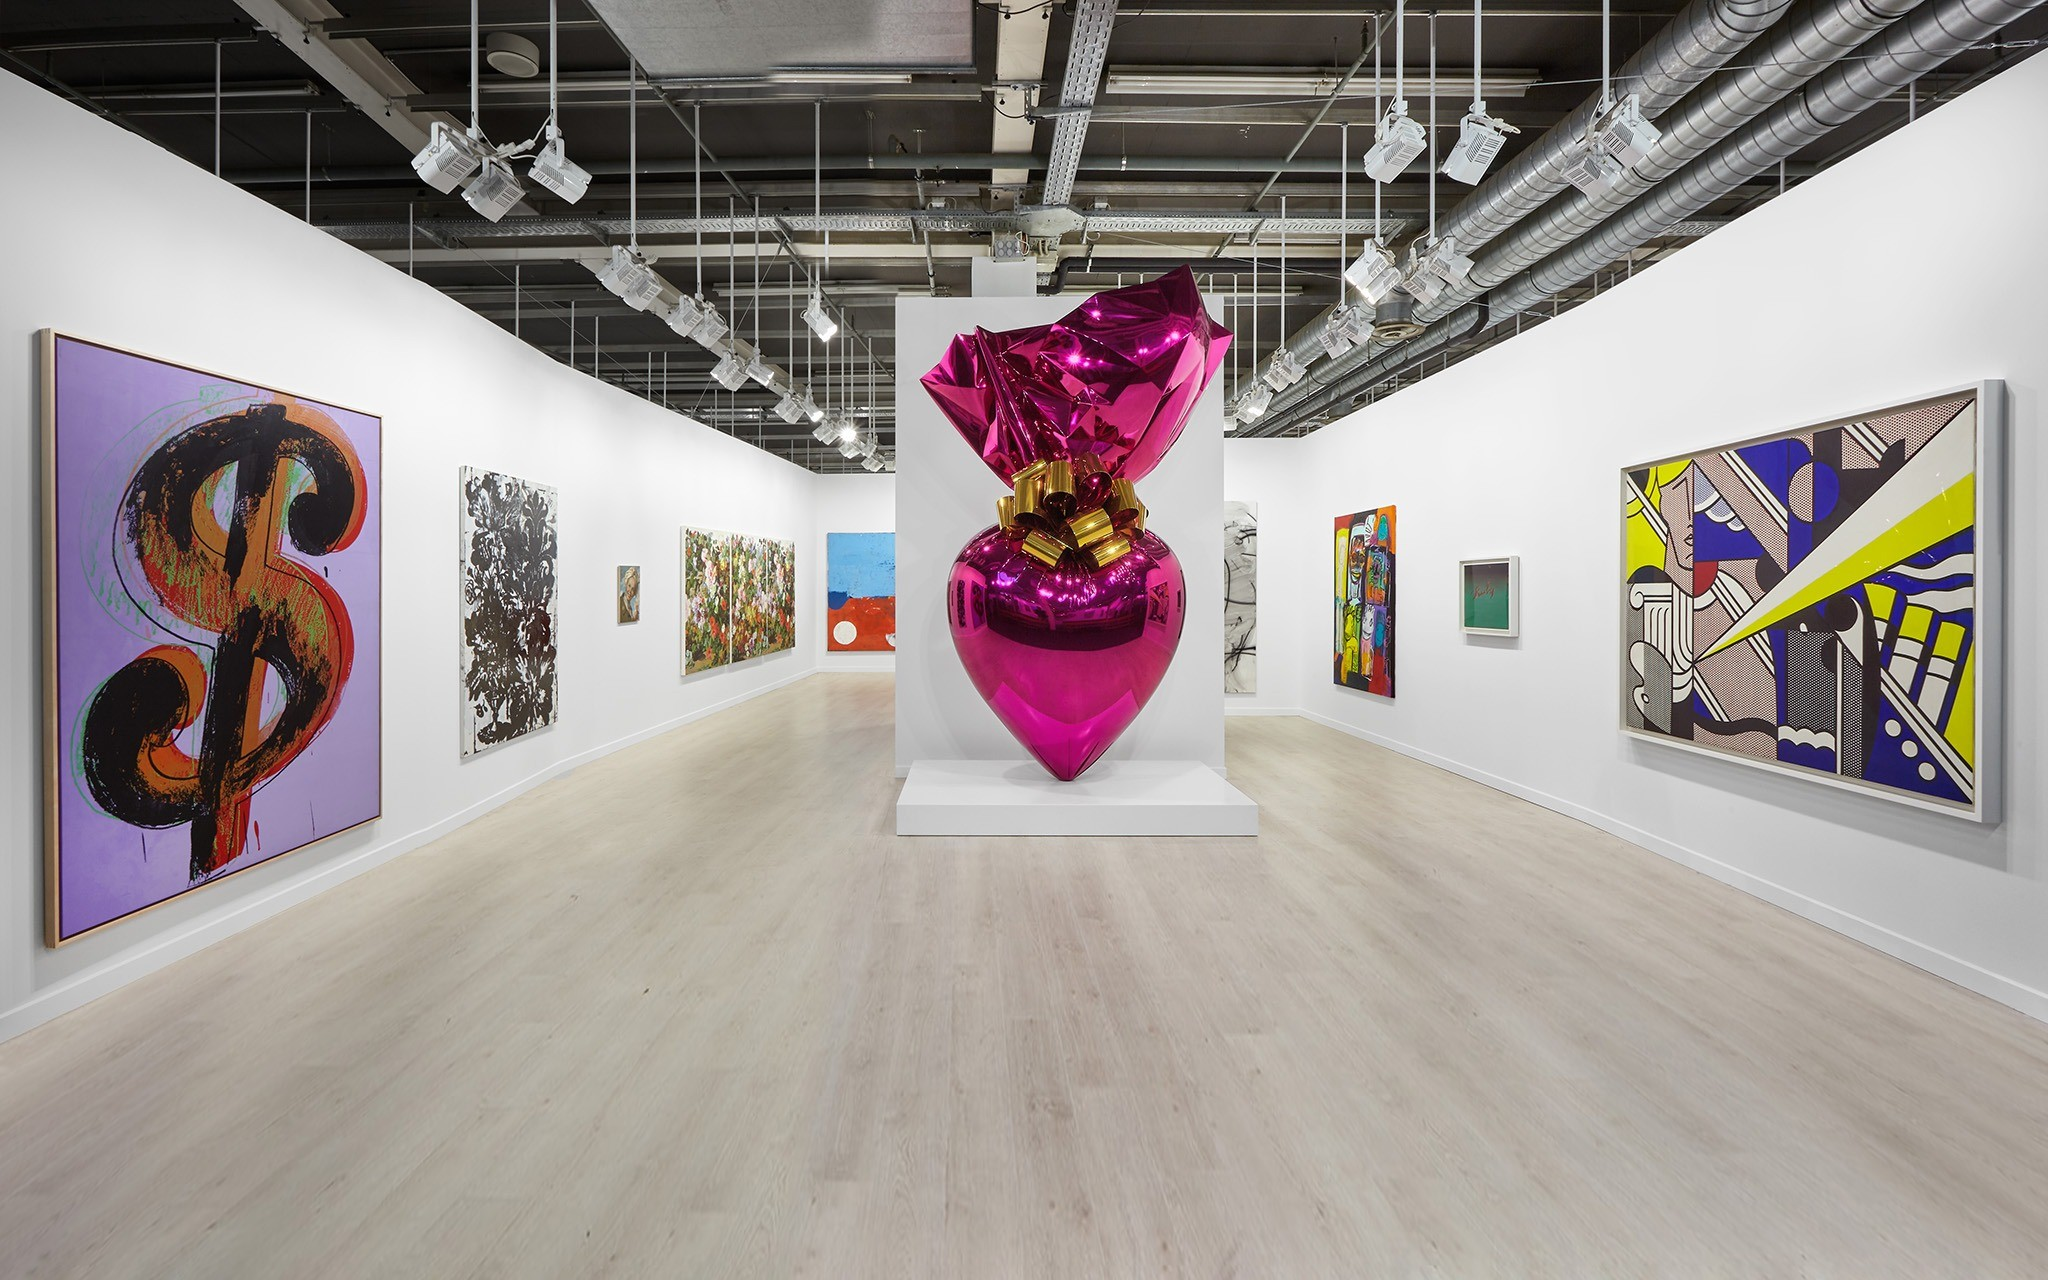 Art Basel 2019 - All The Fun You Can't Miss art basel Art Basel 2019 – All The Fun You Can't Miss Art Basel 2019 gagosian